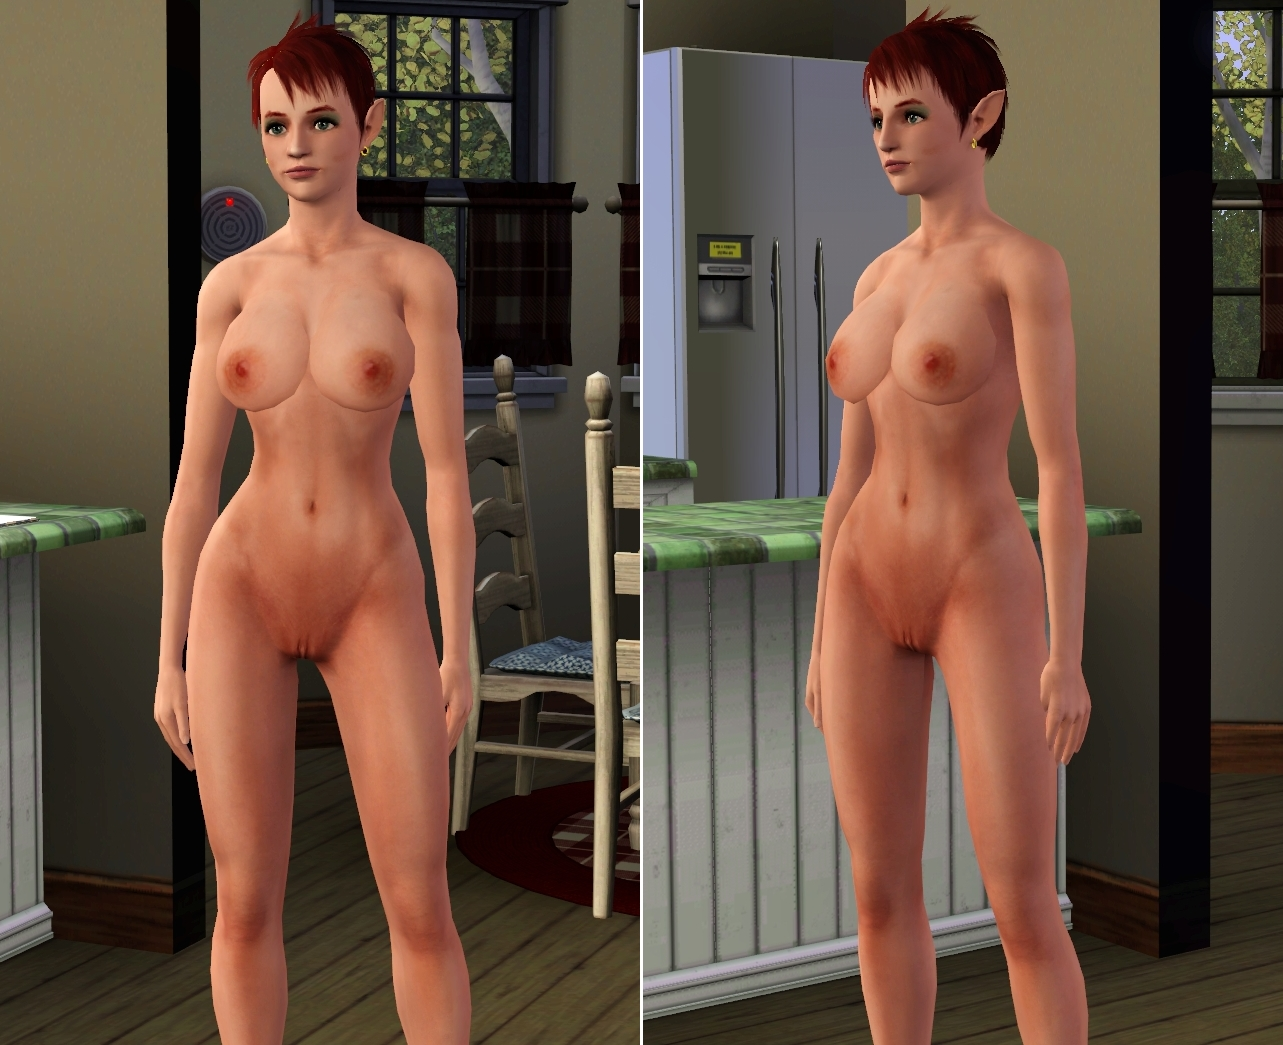 Sims 3 men naked mod sexy photos